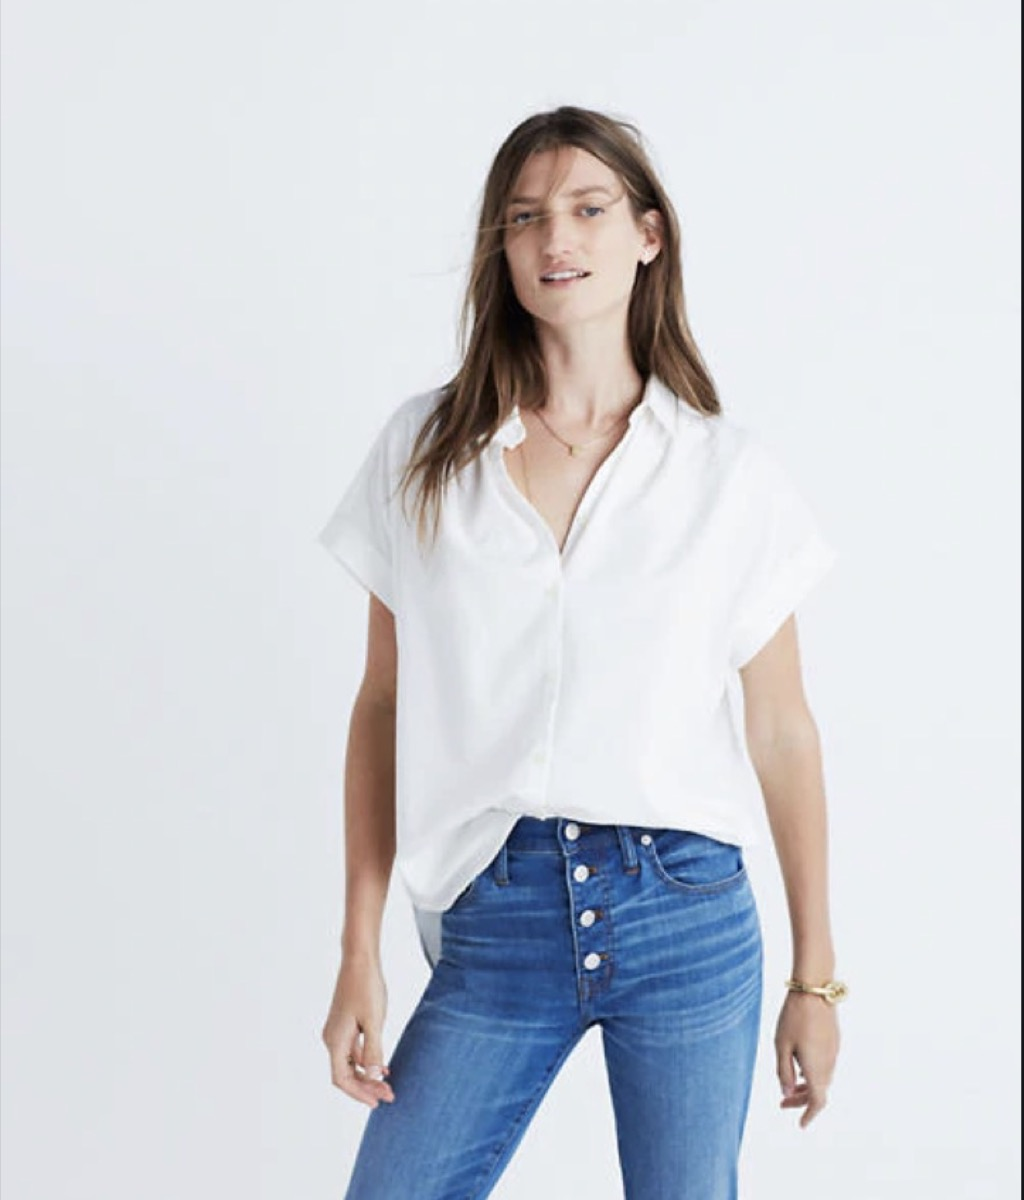 woman in white top and jeans